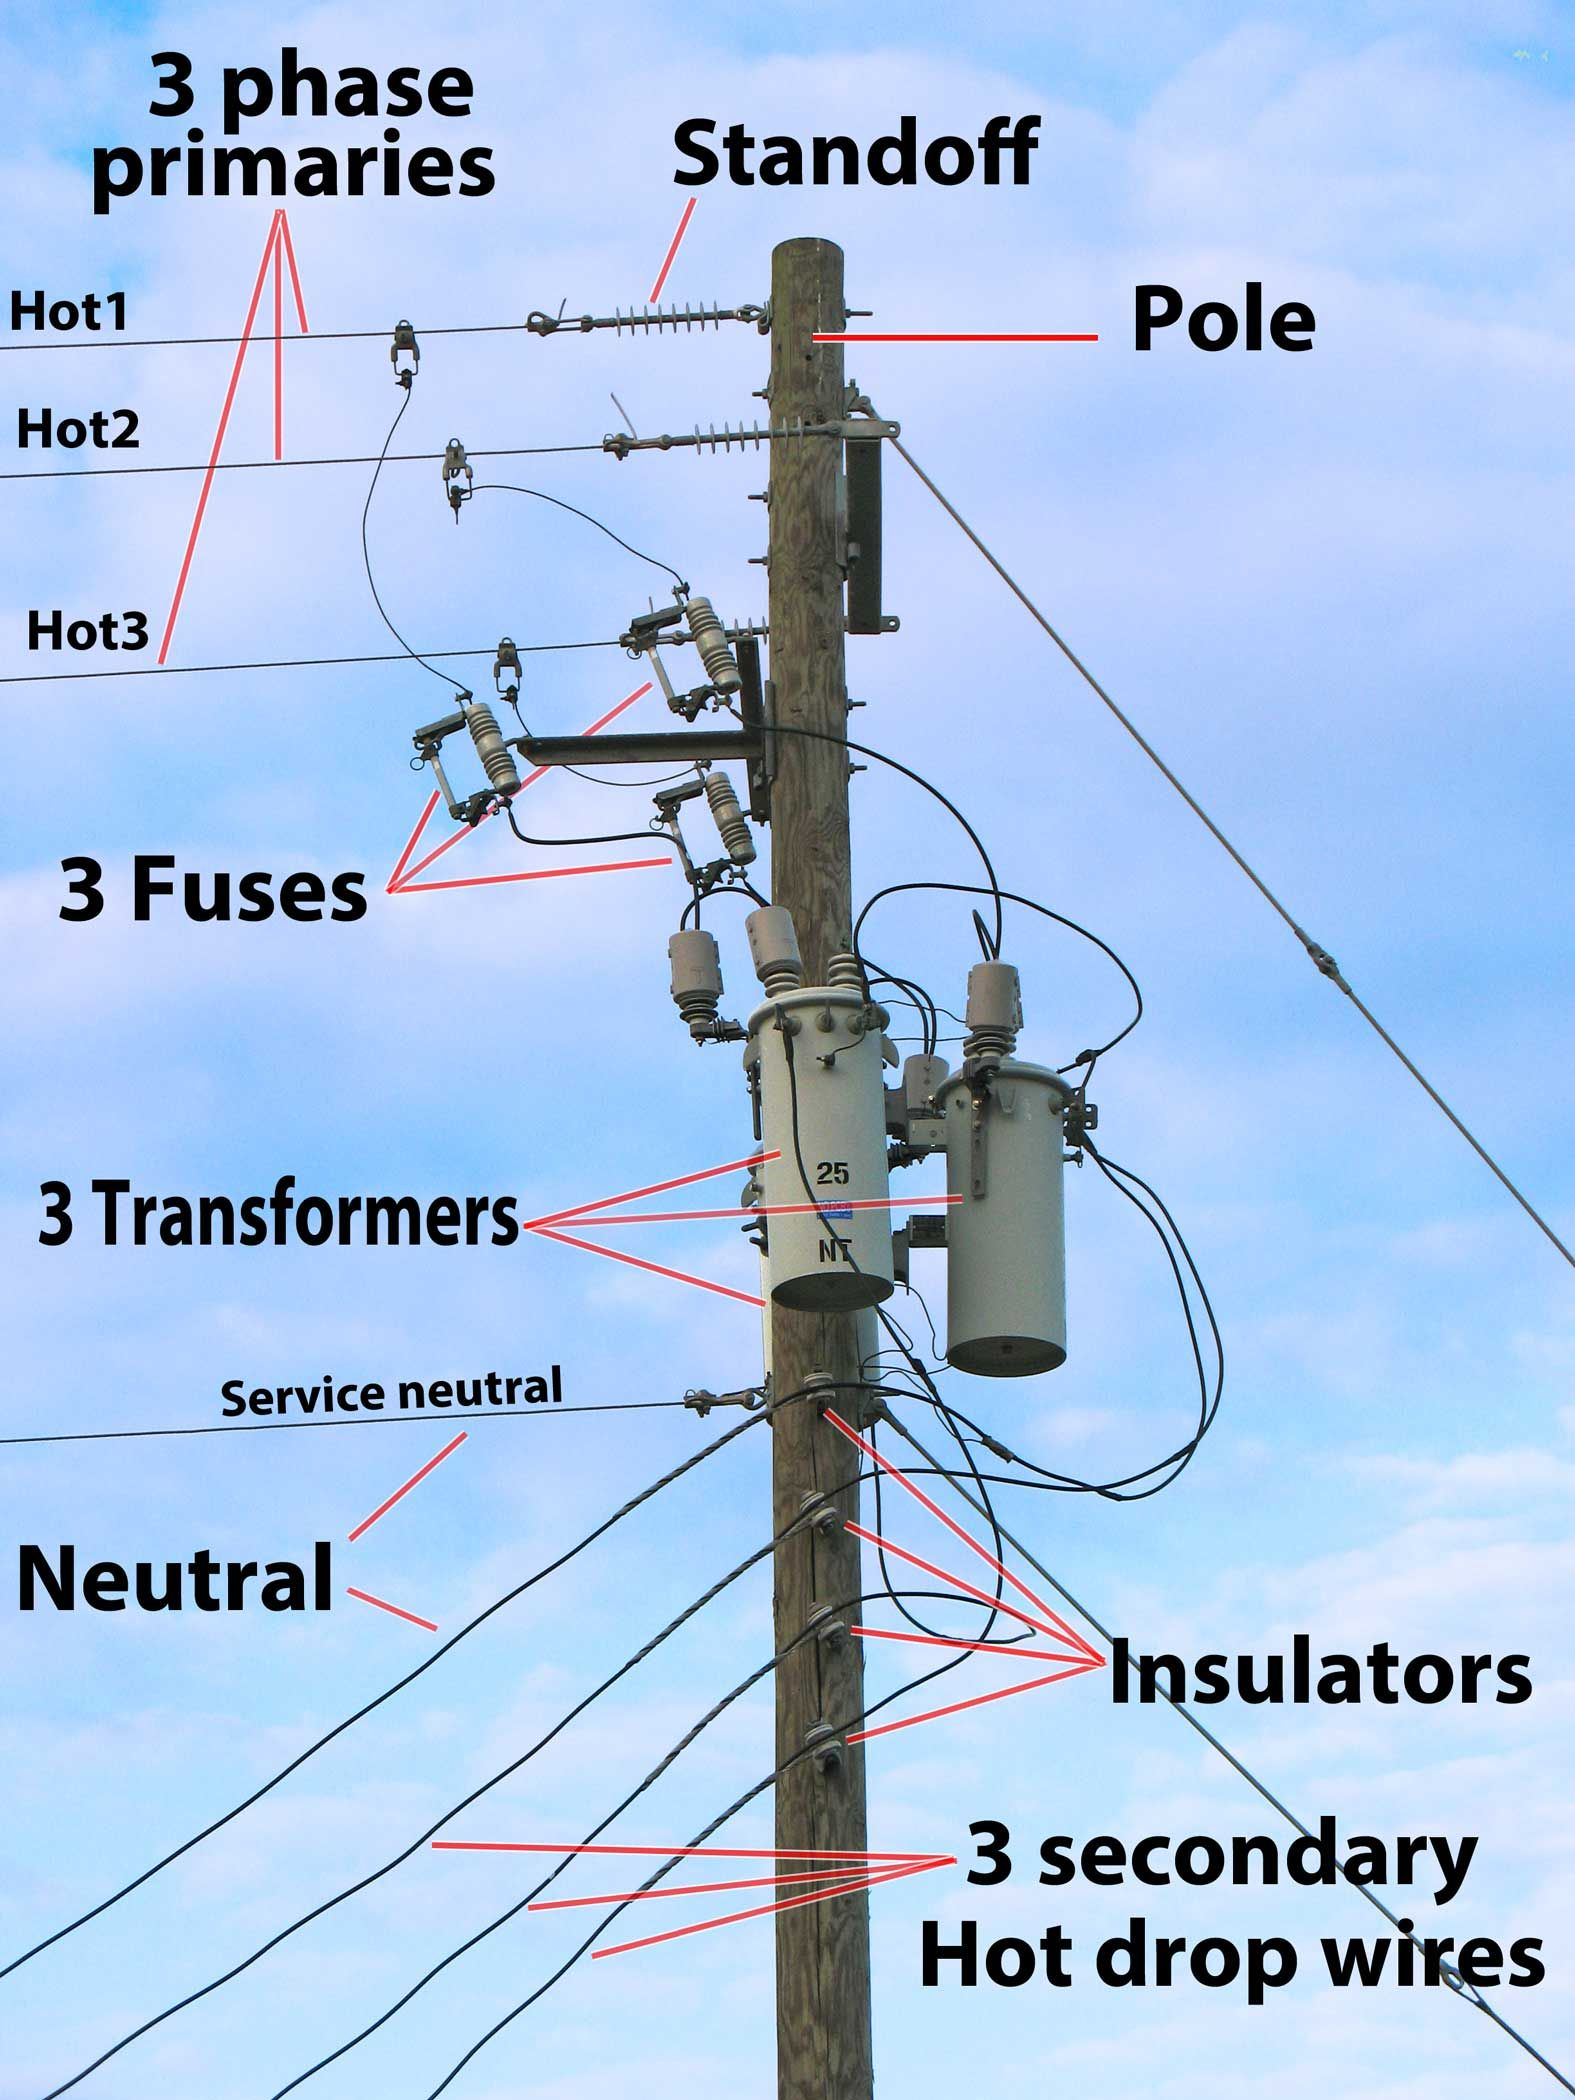 hight resolution of utility pole electrical layout electrical wiring diagram electrical work electrical projects